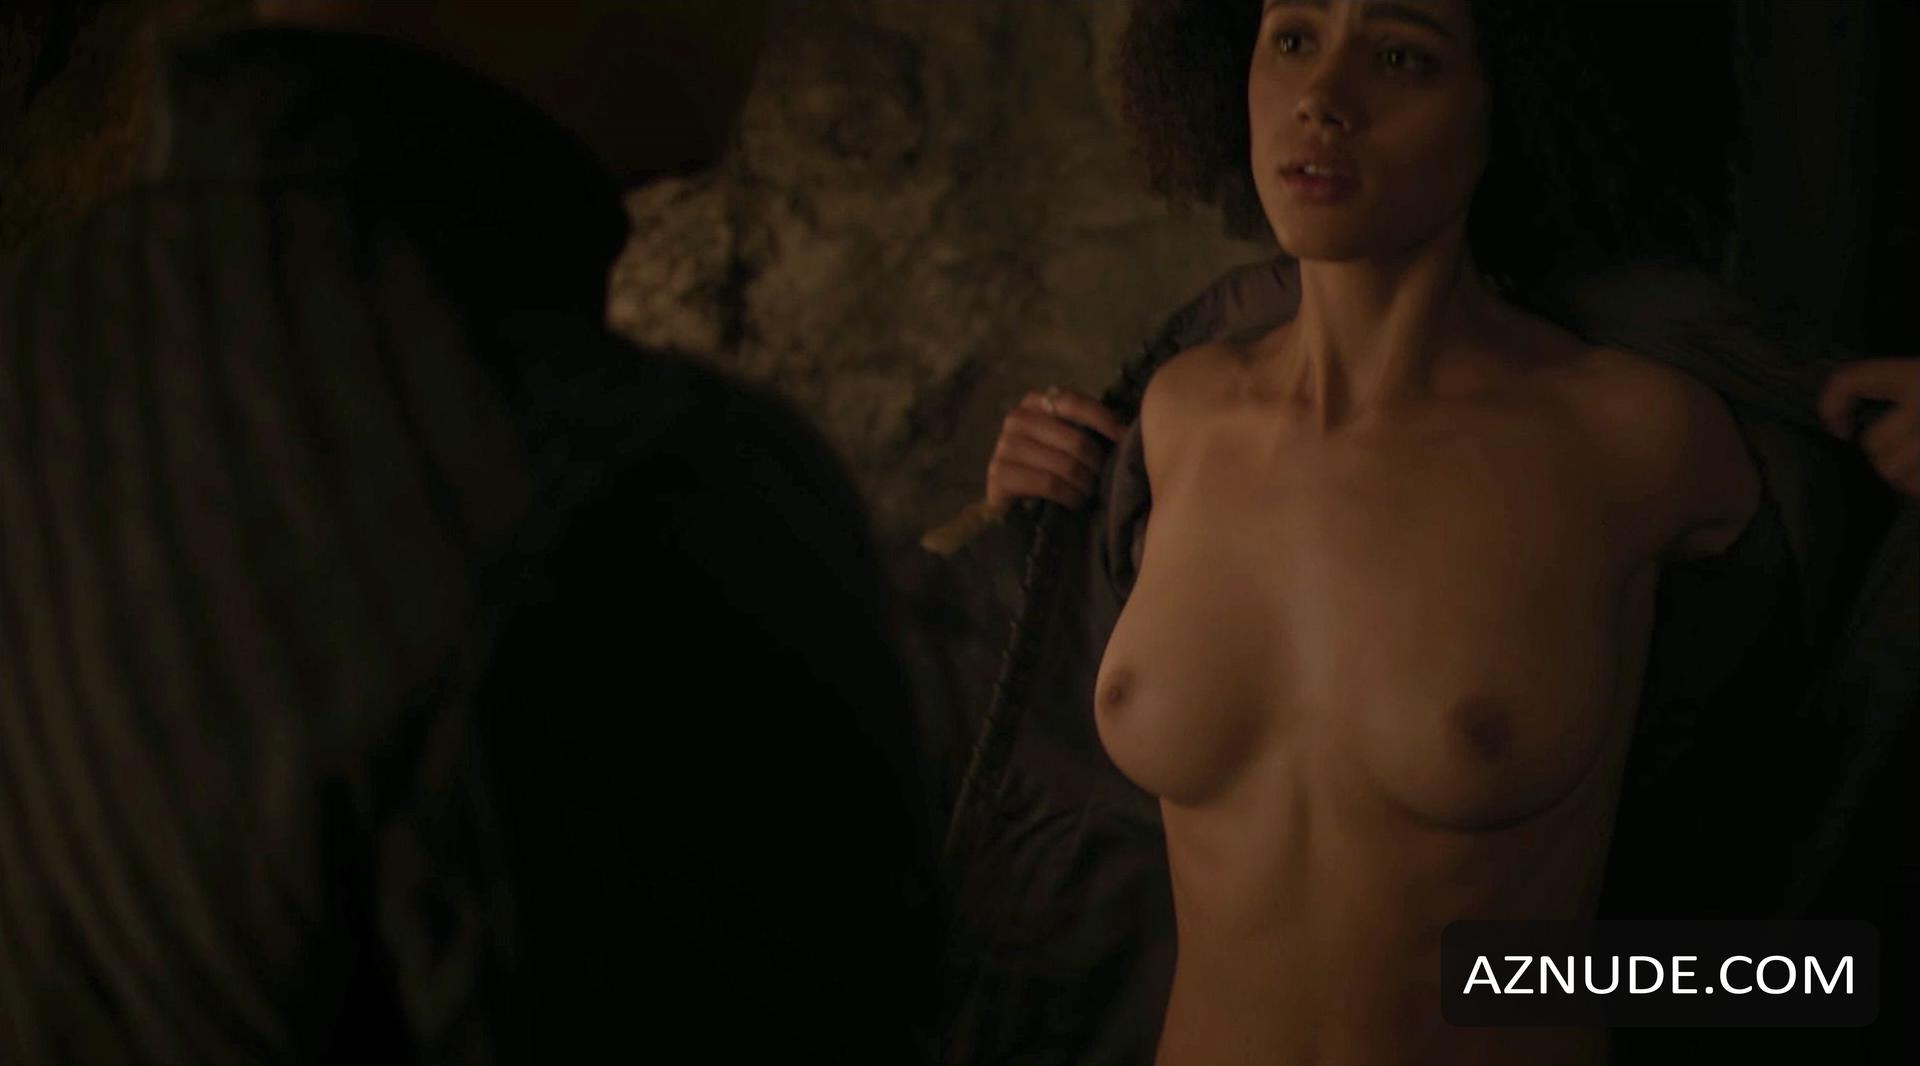 hot tied girl topless video